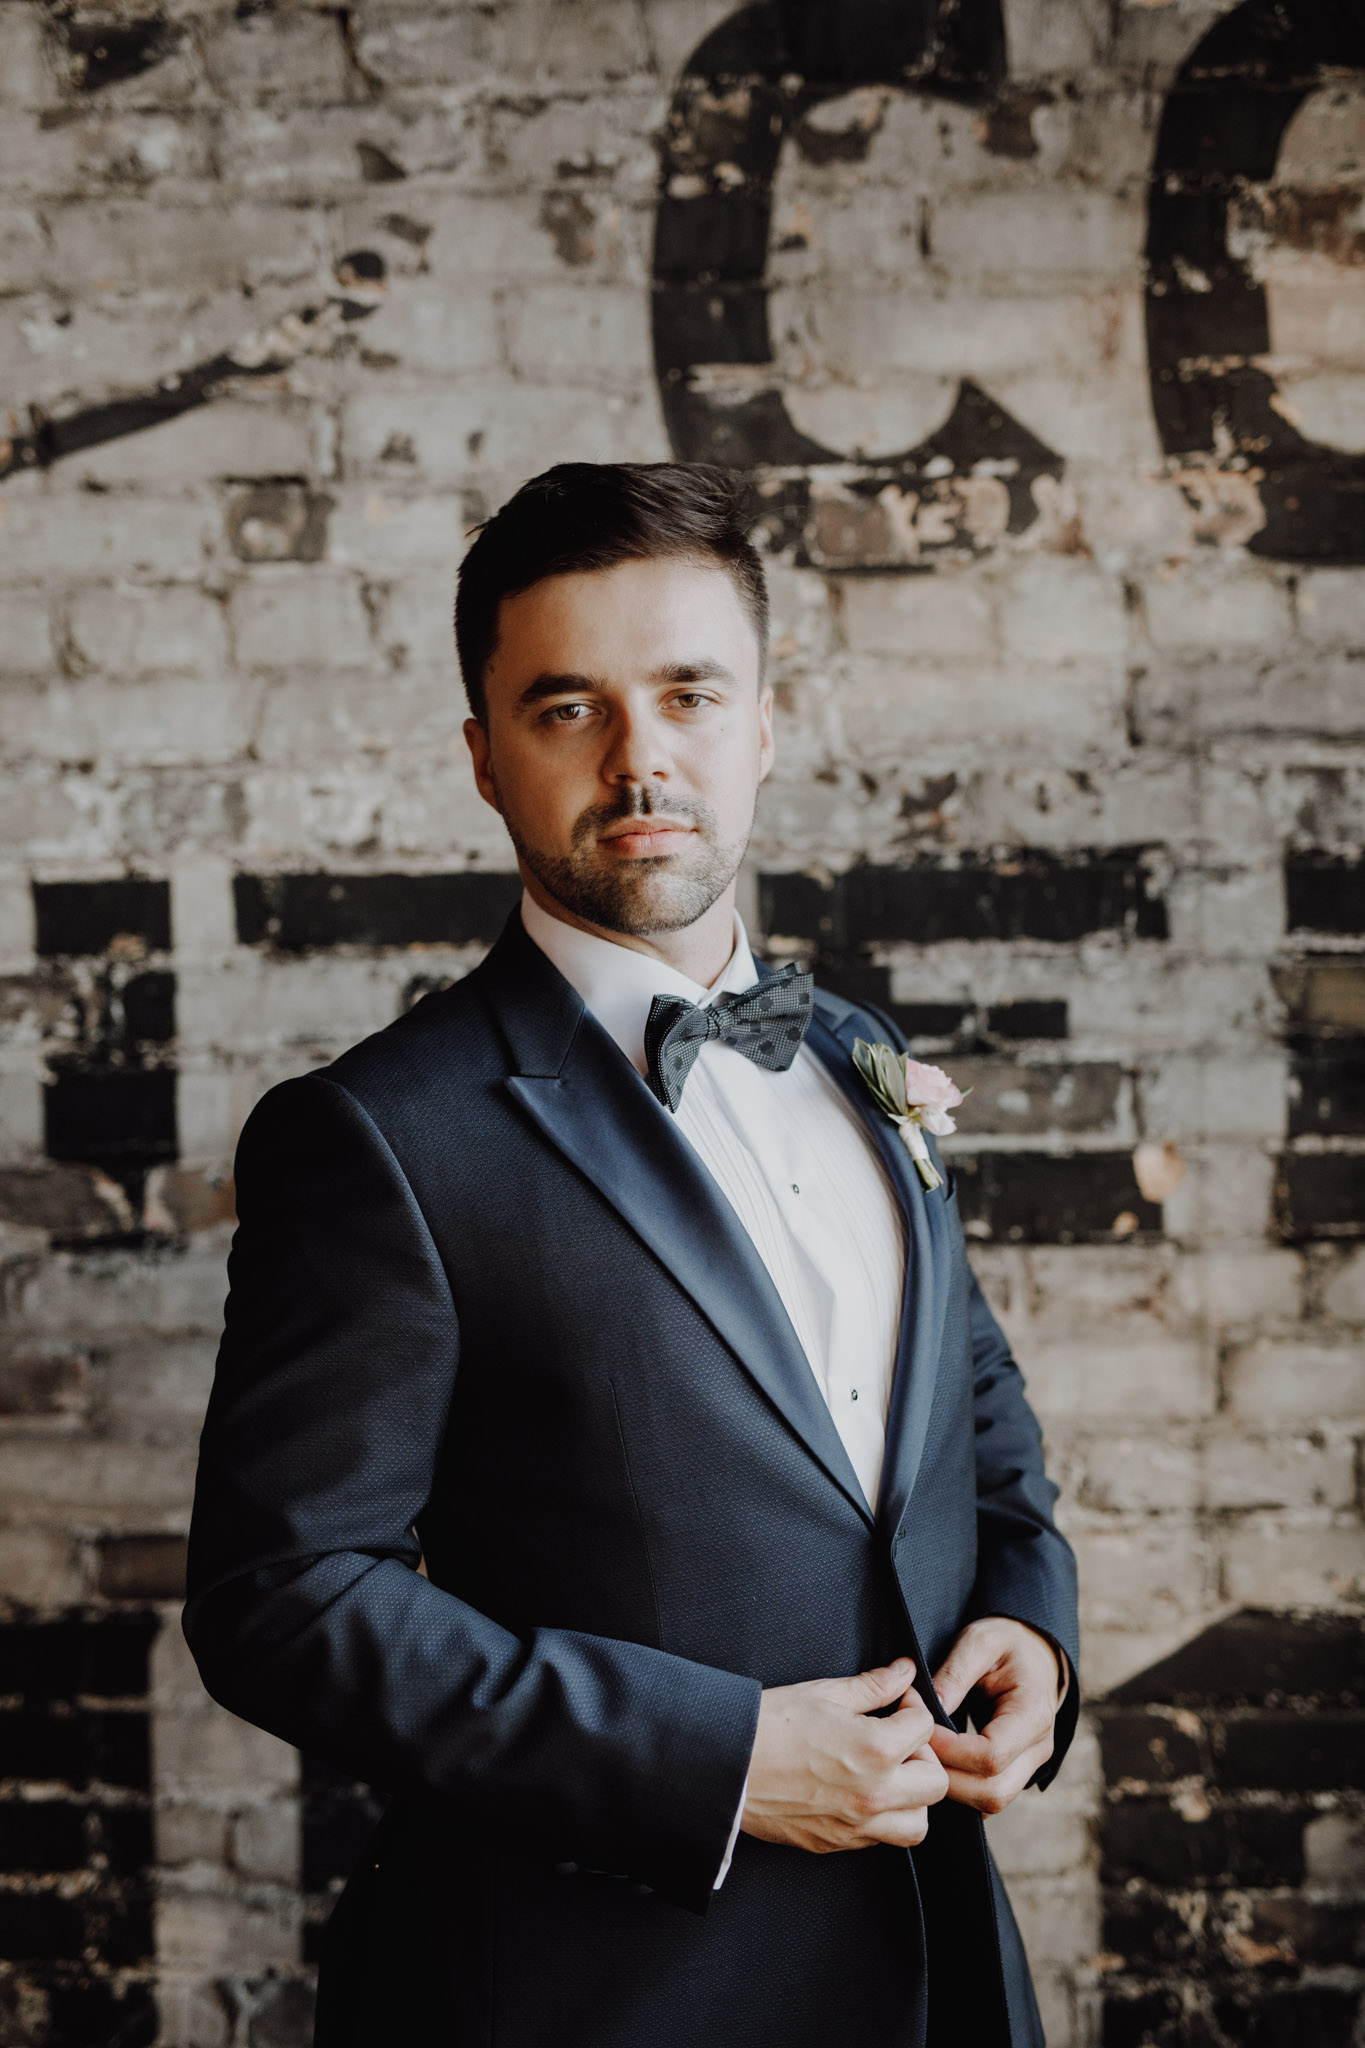 Dapper groom at The Burroughes Wedding. Love By Lynzie. Wedding Photographer Jennifer See Studios.